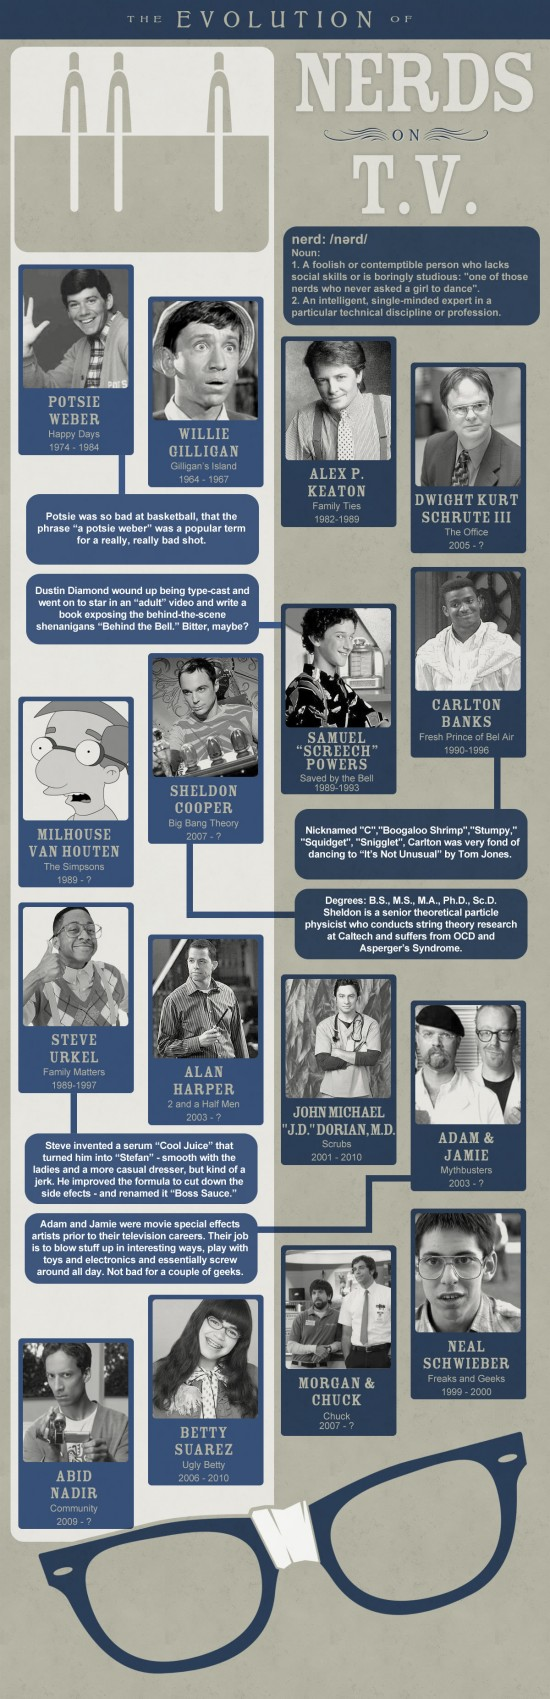 INFOGRAPHIC: THE EVOLUTION OF NERDS ON TV    If you are potato couch, I am pretty you are familiar with the nerd characters on TV over the years. In this infographic, you will discover and reminisce the old times if you see the nerd characters on TV that entertains us with their quirky antics.